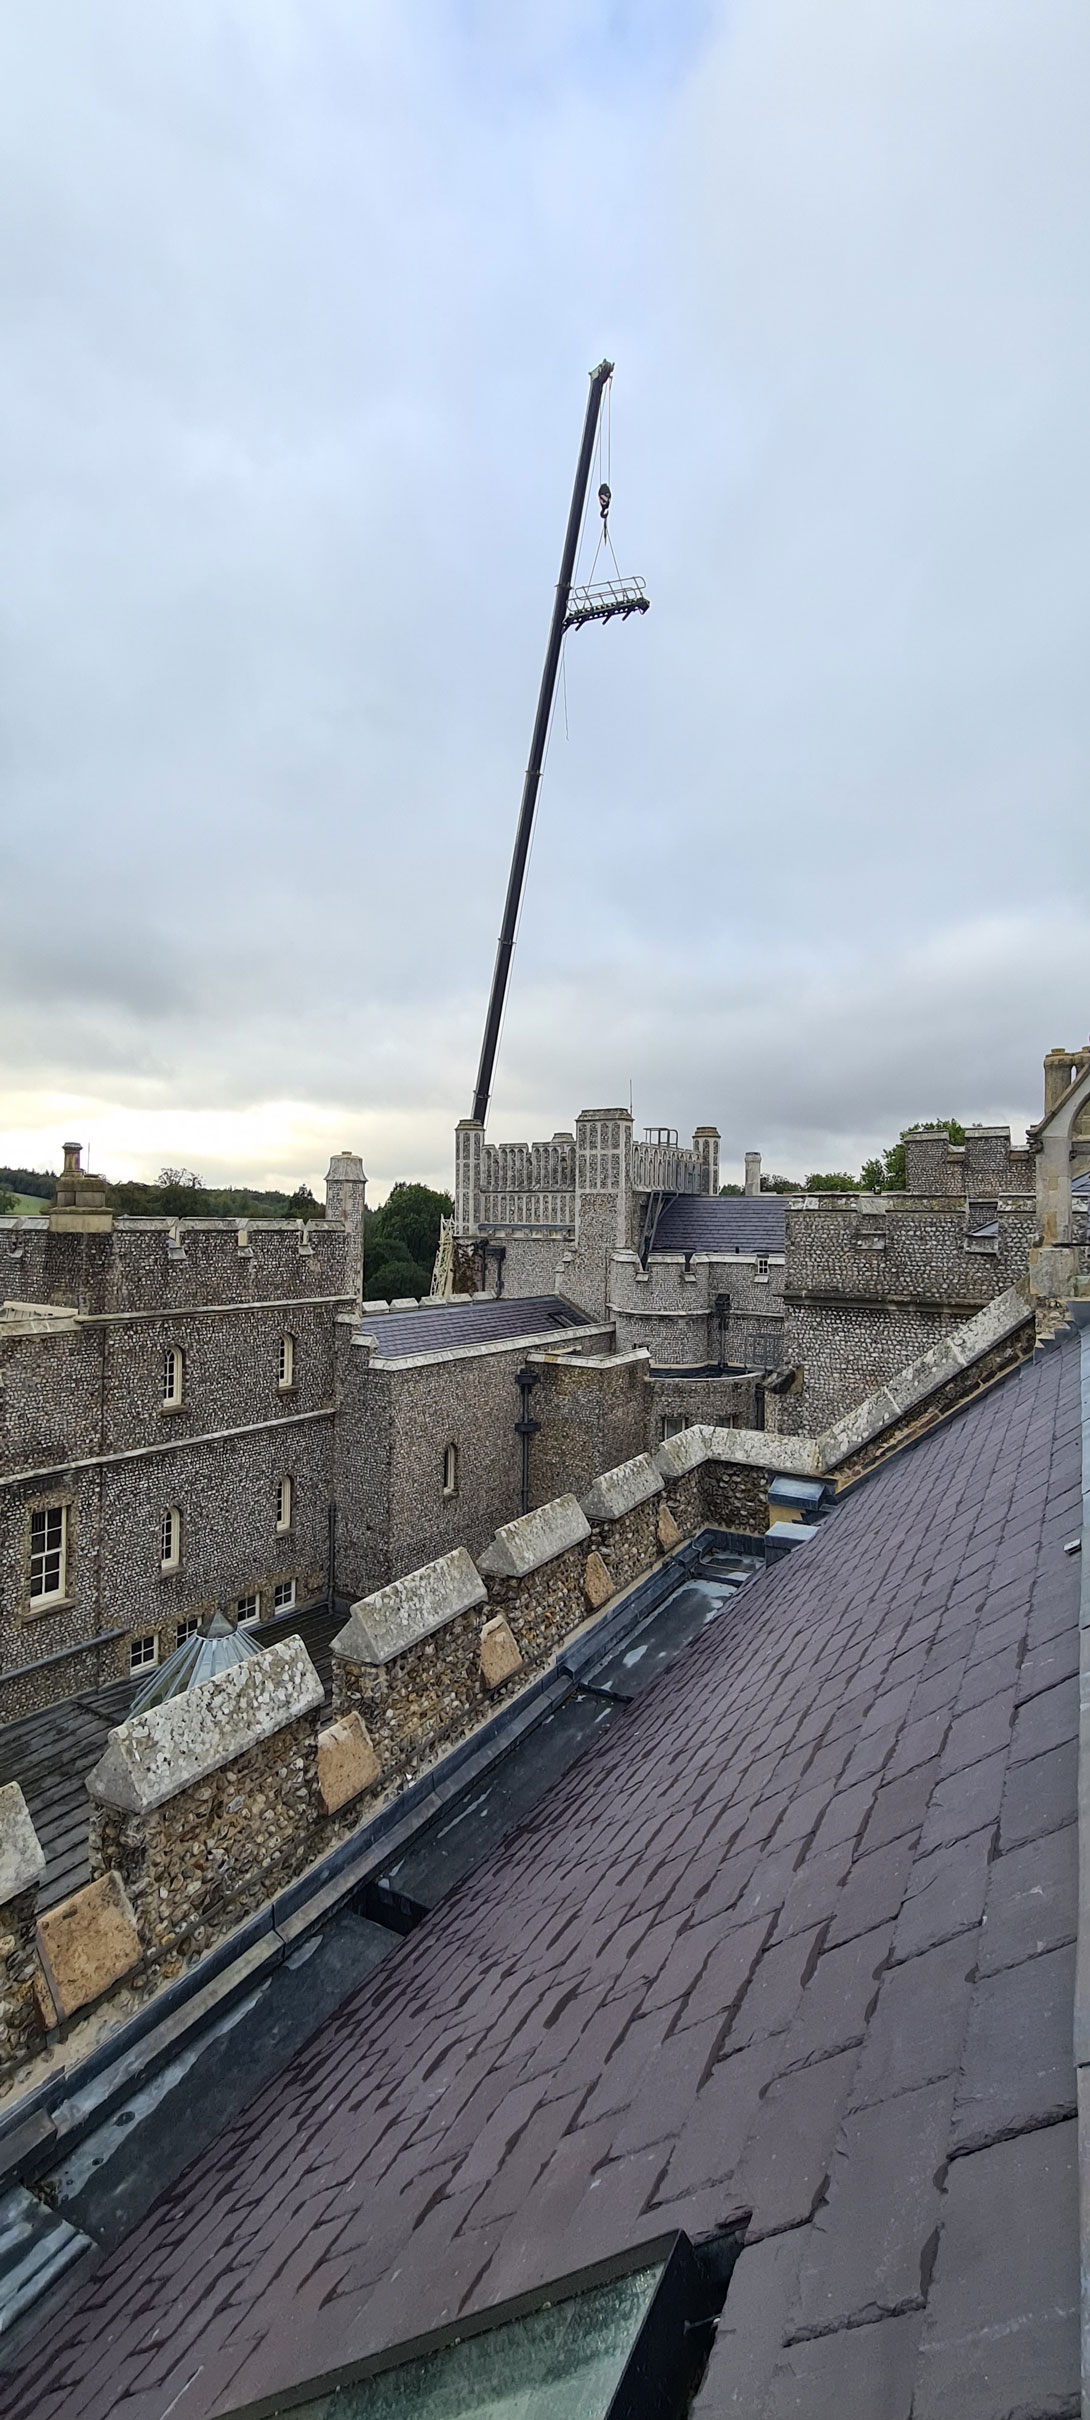 Crane lifting Step Unit and placing it on college roof